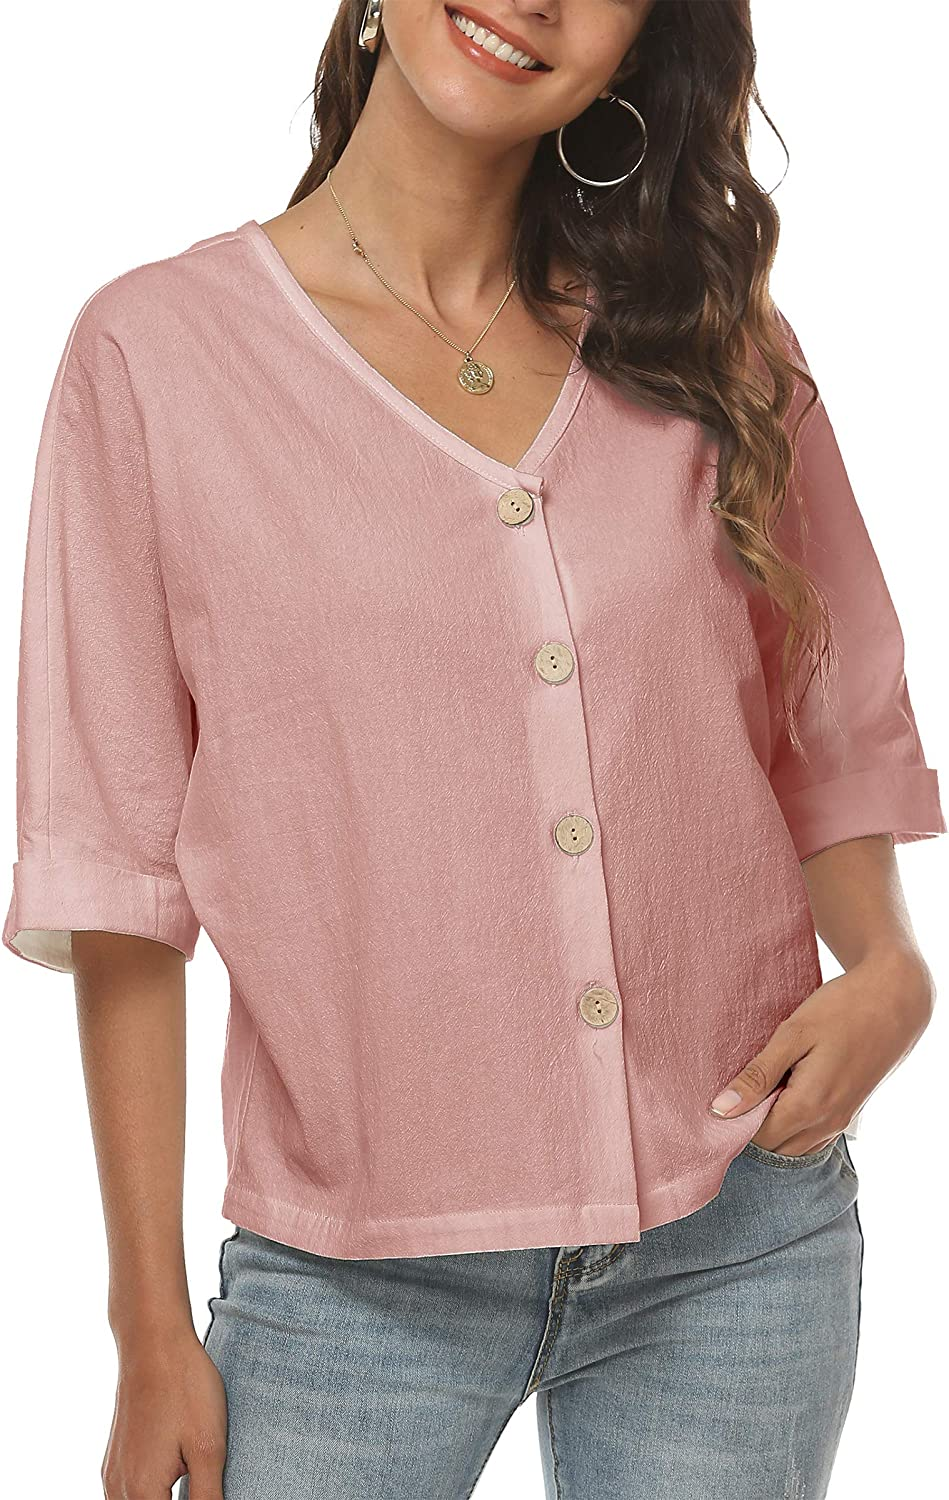 LNX Womens Linen Tops Button Down V Neck Half Cuffed Sleeve Two Wear Casual Summer T Shirts (Small, Pink)